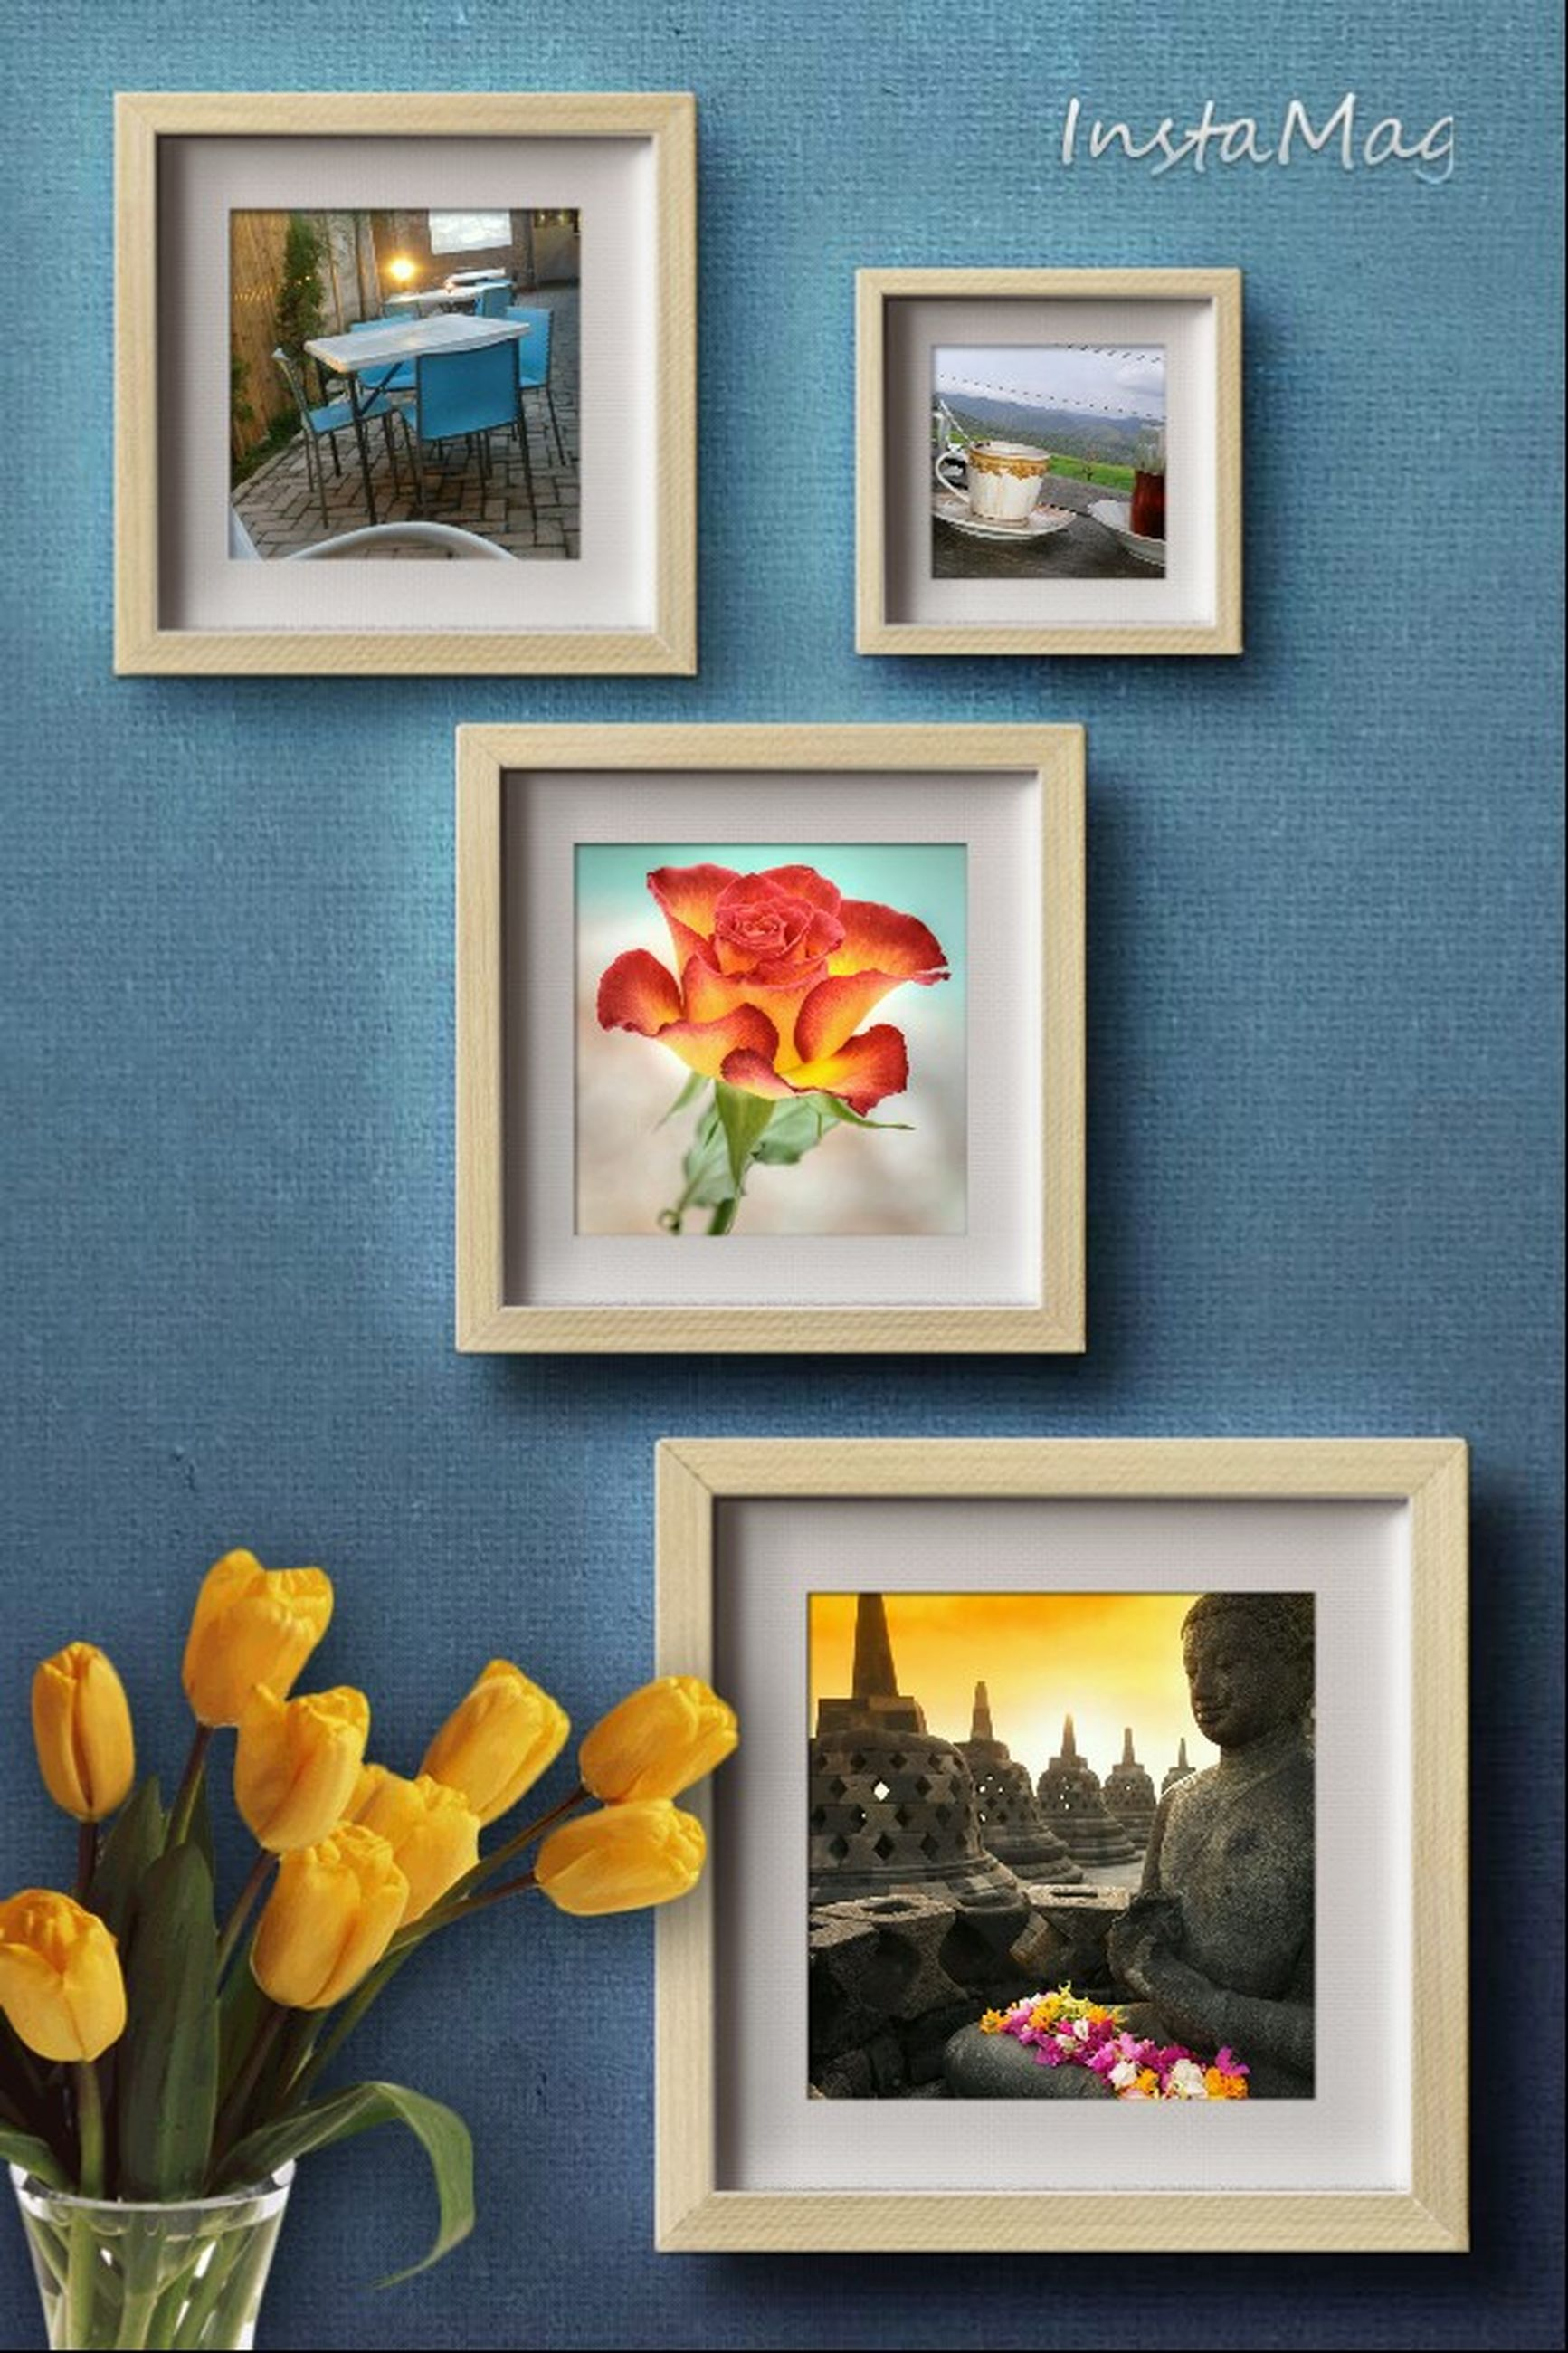 flower, indoors, vase, window, home interior, fragility, petal, glass - material, freshness, table, decoration, wall - building feature, flower head, wall, close-up, variation, no people, house, potted plant, flower arrangement